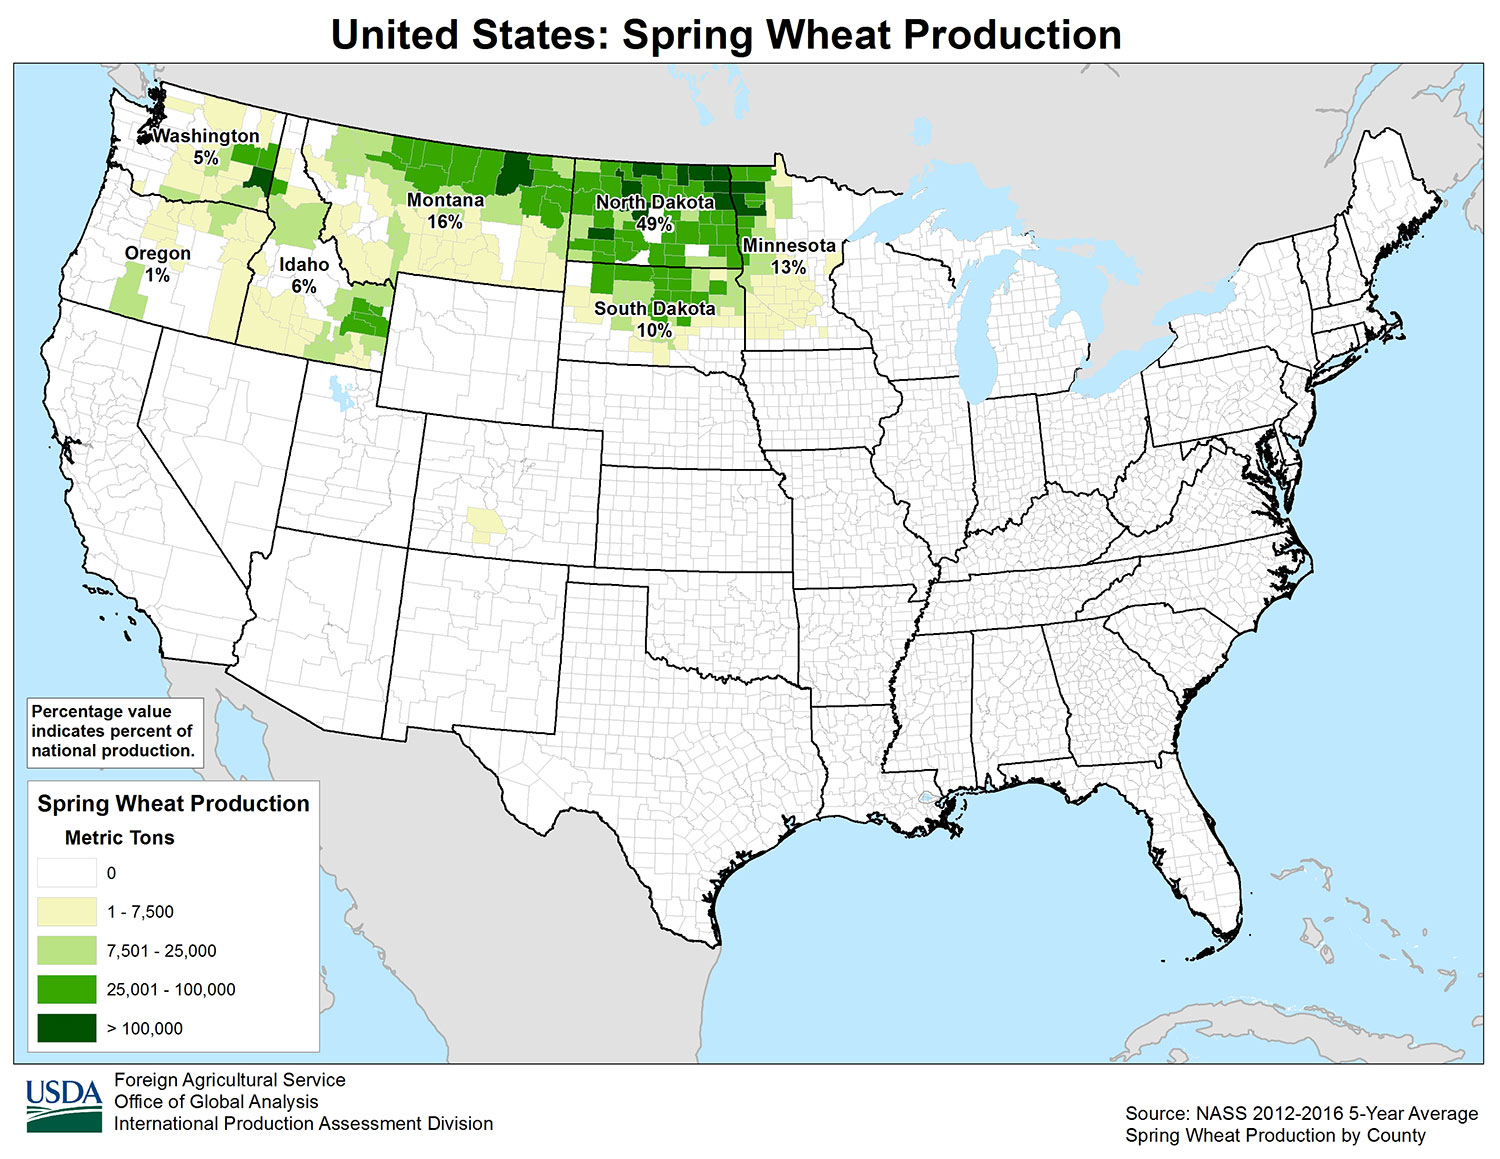 USDA Spring Wheat Production in the United States